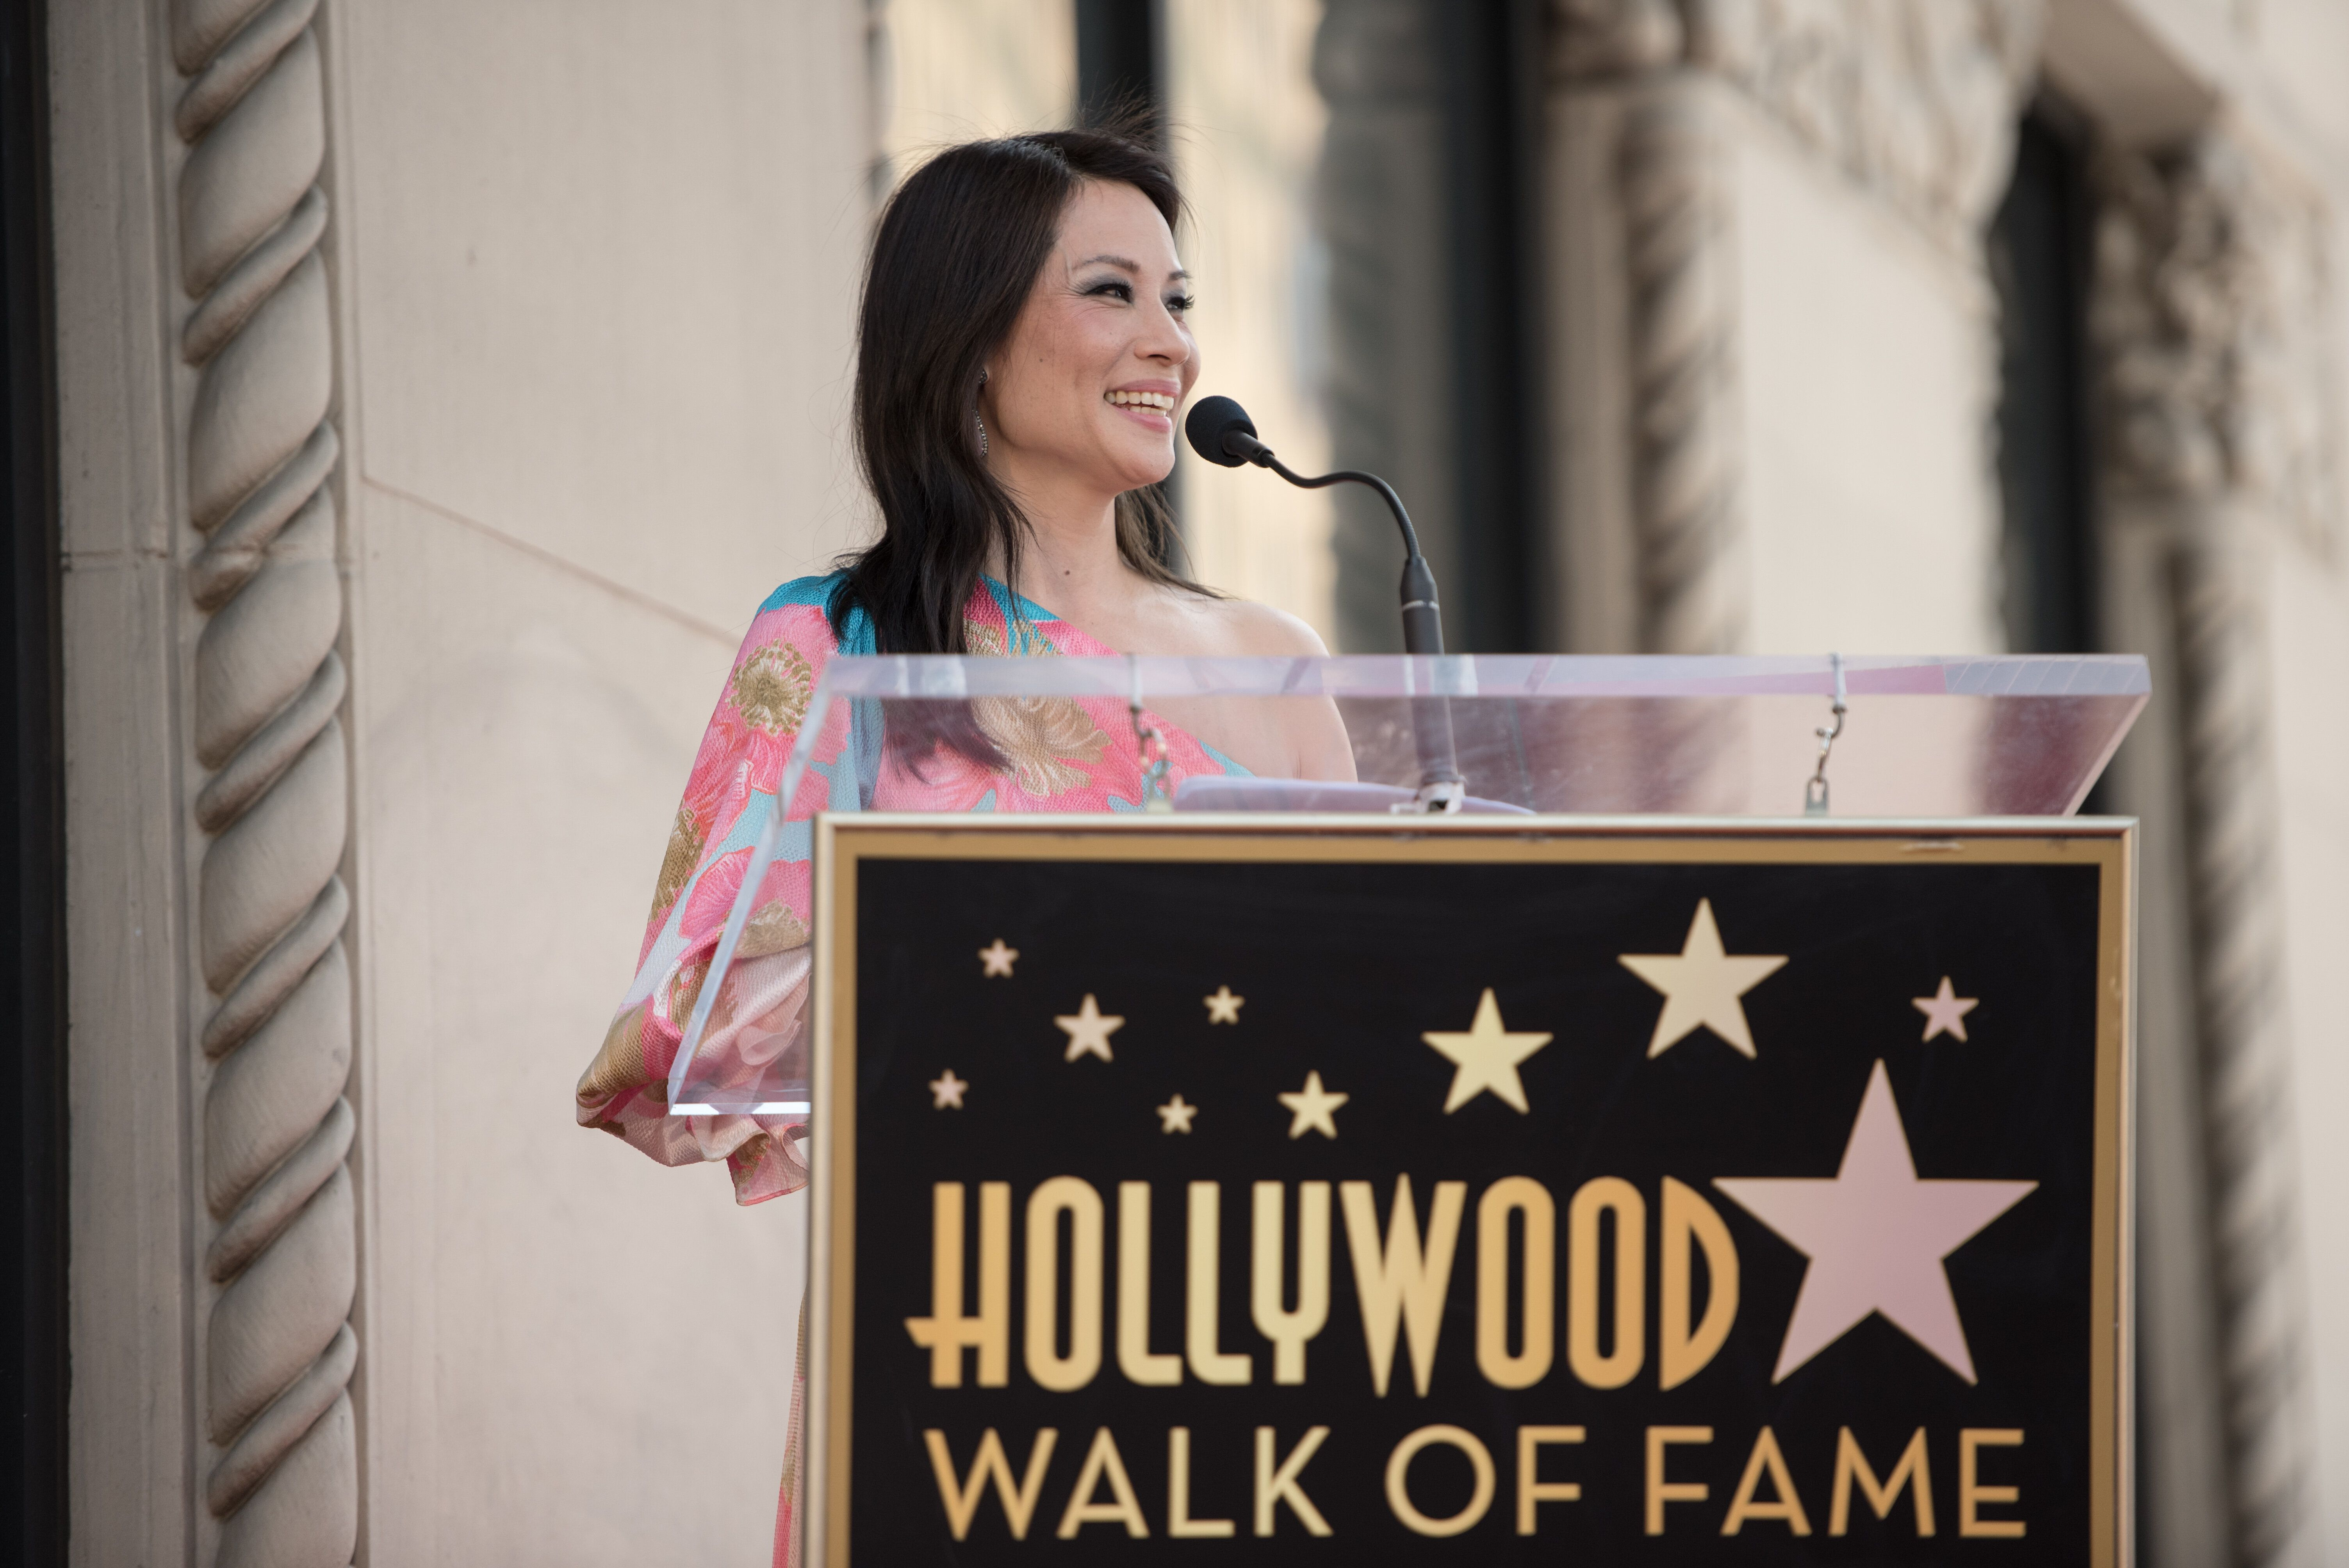 HOLLYWOOD, CALIFORNIA - MAY 01: Lucy Liu at Lucy Liu's Hollywood Walk of Fame star ceremony on May 01, 2019 in Hollywood, California. (Photo by Morgan Lieberman/FilmMagic)